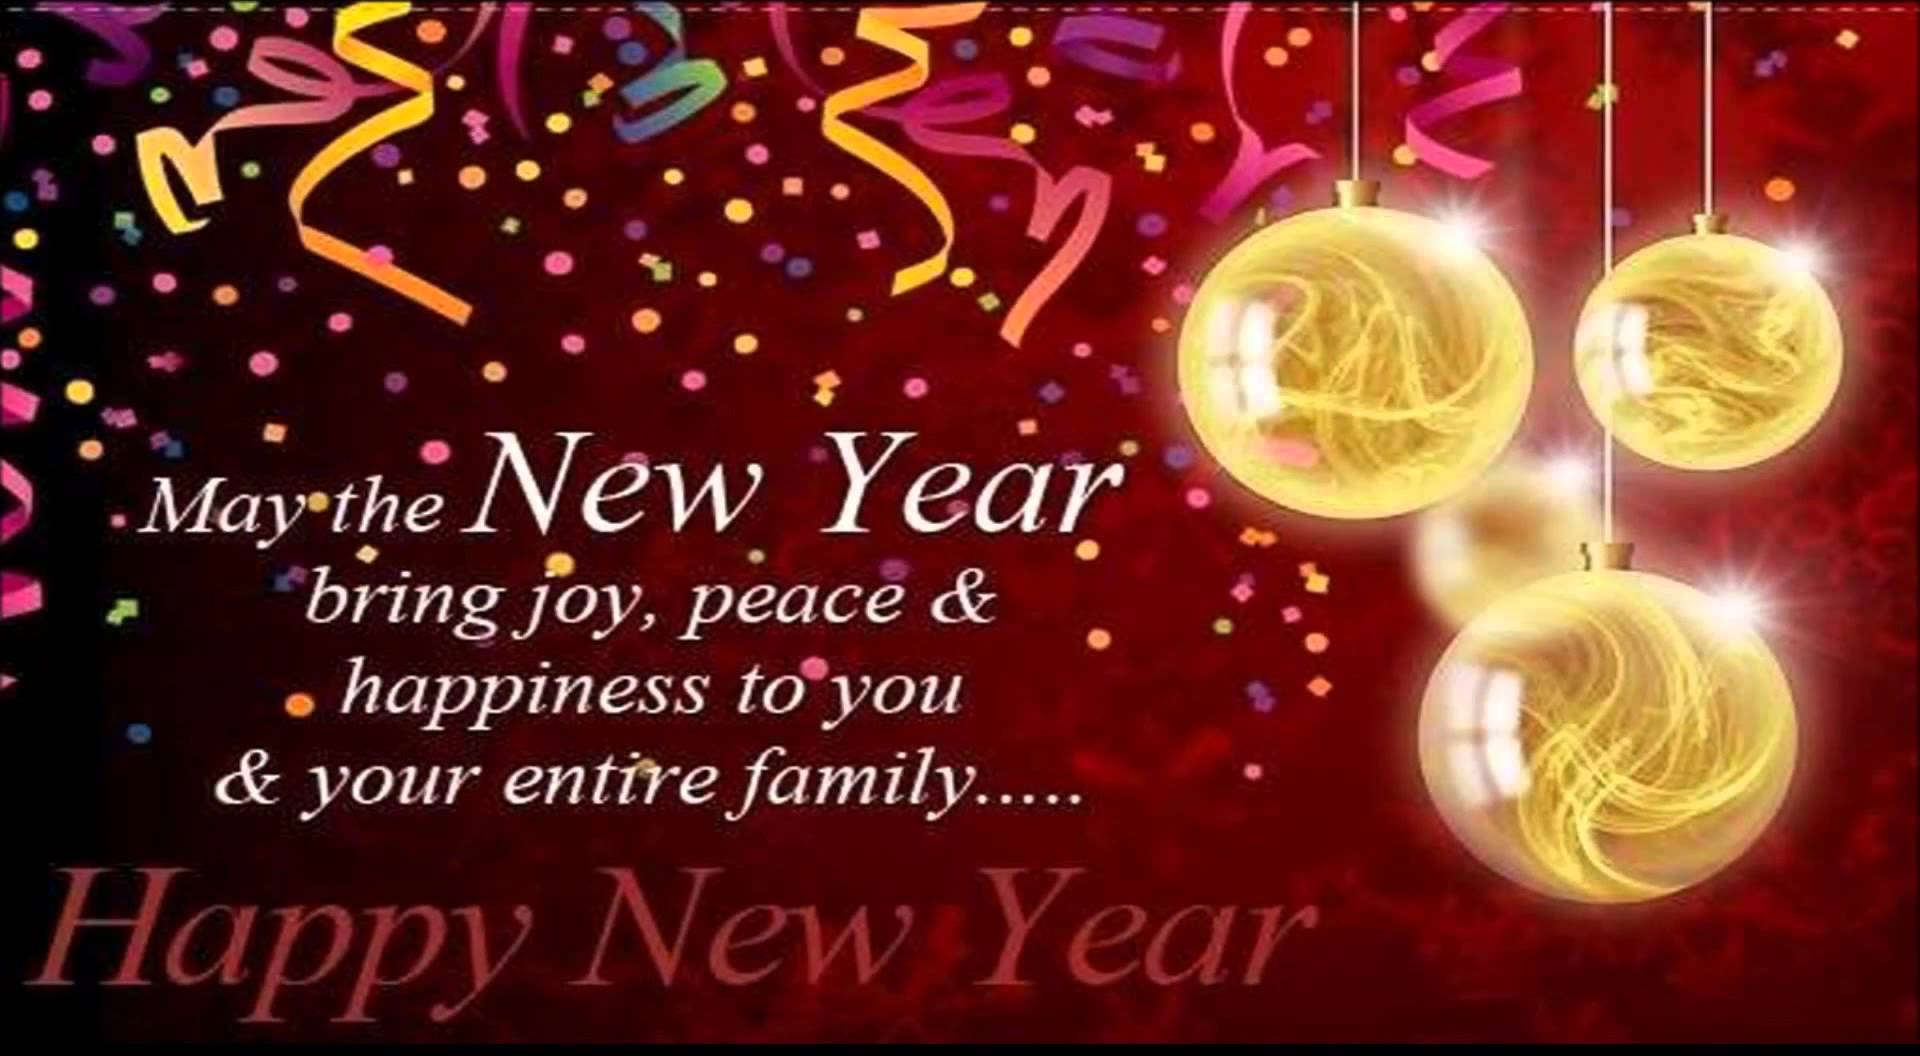 Whatsapp New Year Greetings 2019 New Year Images